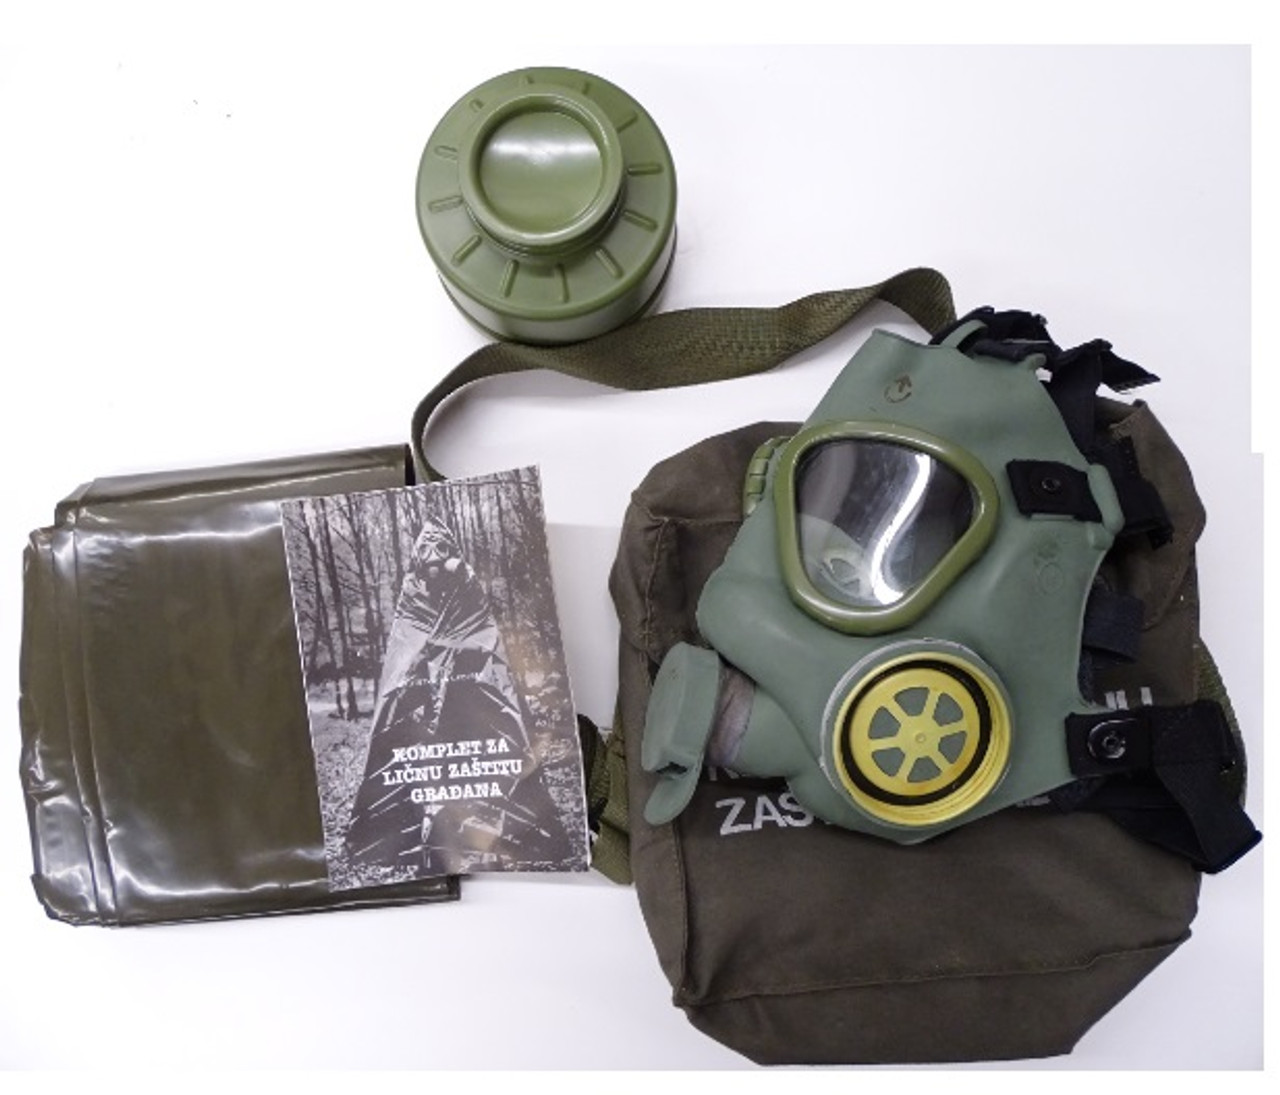 Yugo M1 Gas Mask - Excellent Condition